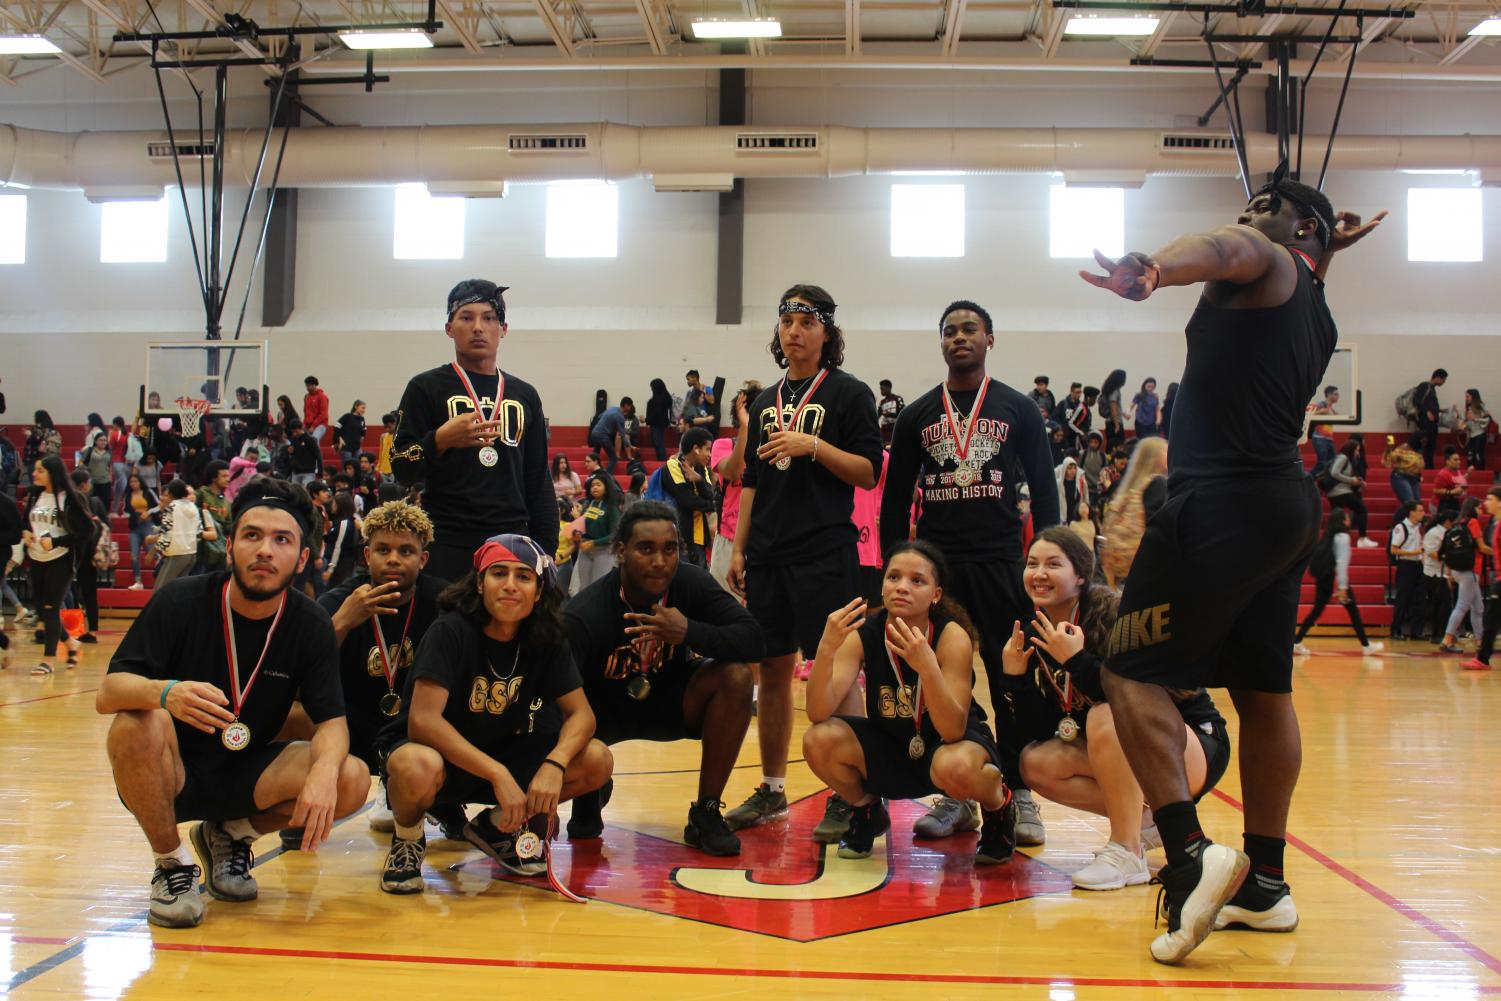 GSO poses with their medals after winning this year's dodge ball tournament. They beat 210 Showtime, 2-1.